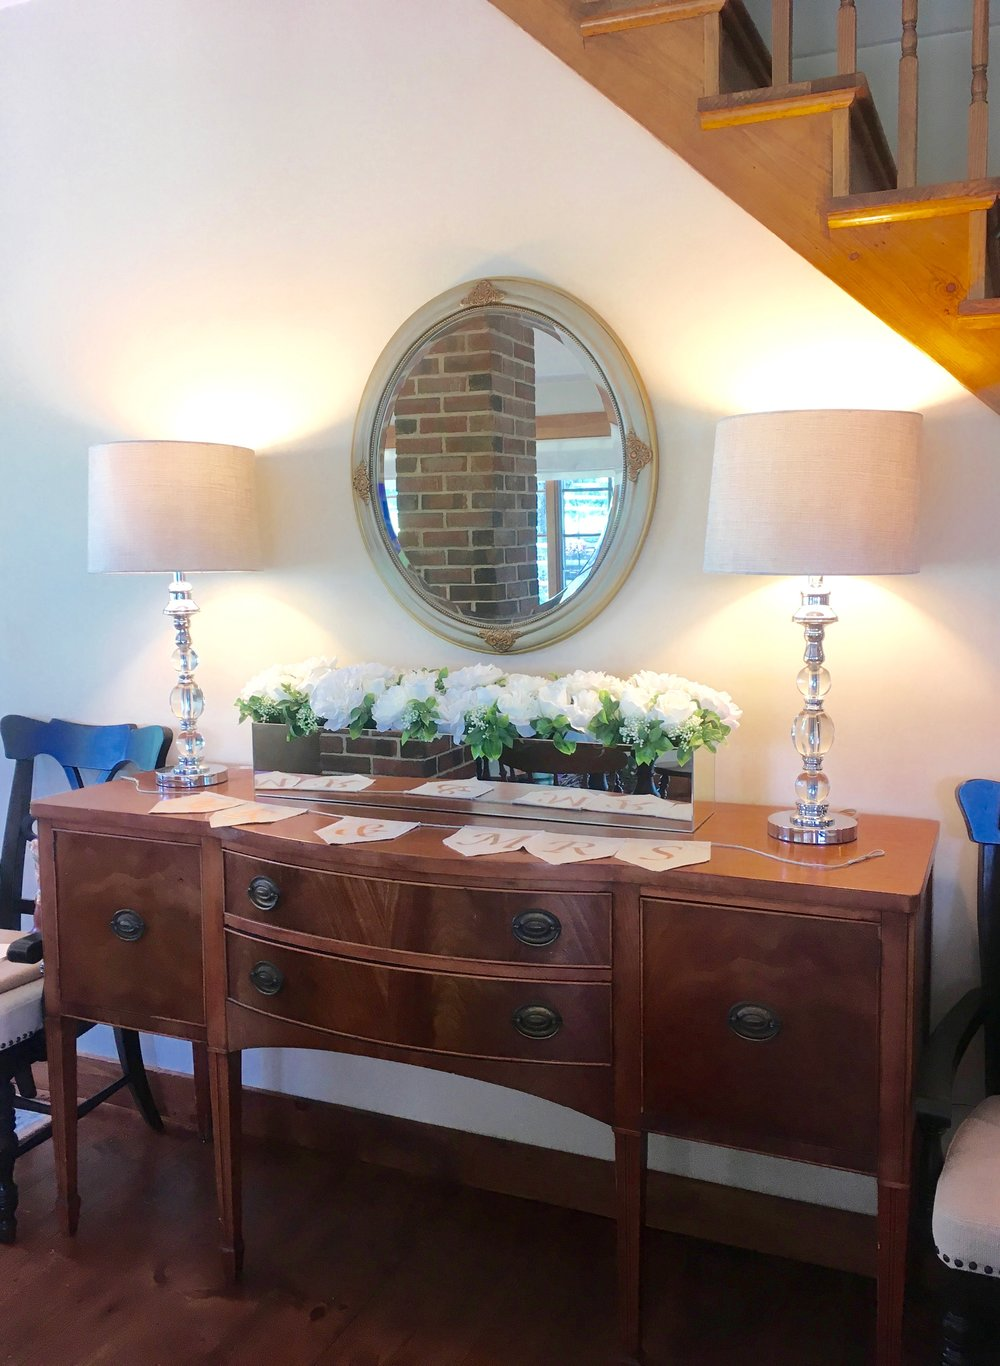 We swapped out a heavy (physically and visually) china cabinet with this sideboard in this clients kitchen. Not only is it pretty, but it's a usable surface for the family wedding they were hosting!